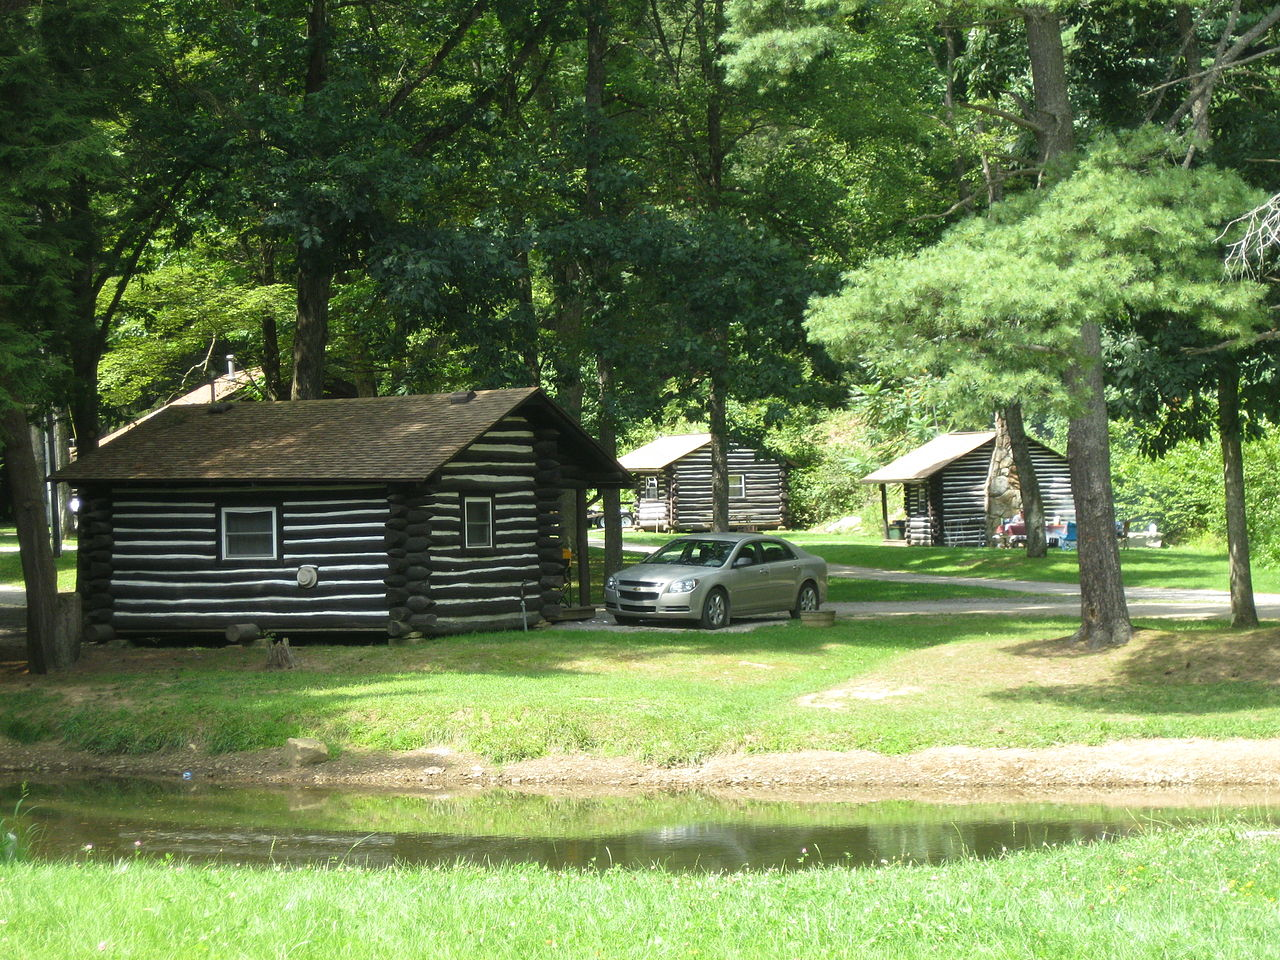 state park hindu dating site Jim crow laws from the 1880s into alabama - all passenger stations in this state operated by any motor it shall be unlawful for colored people to frequent.